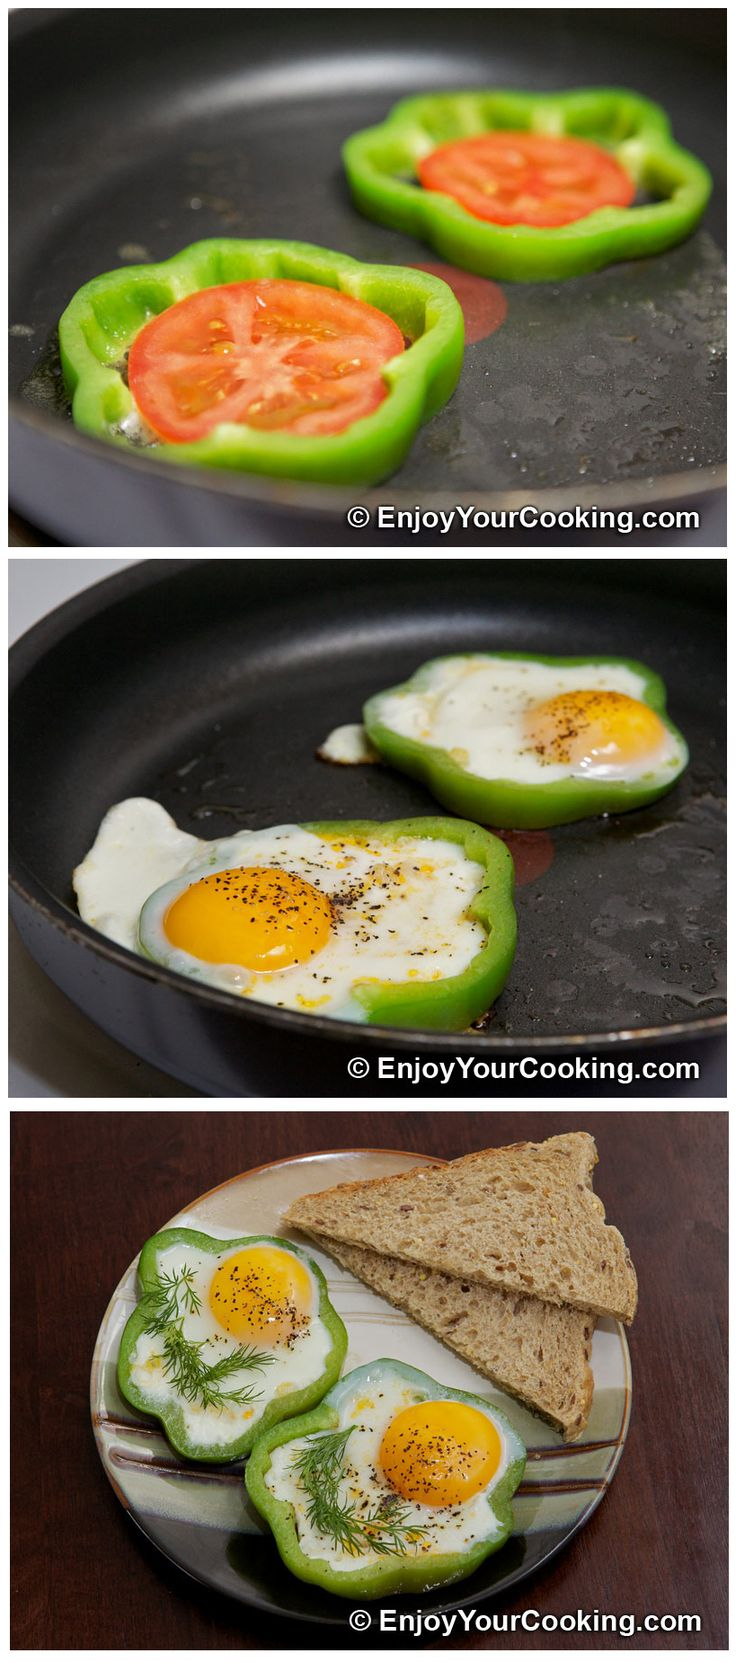 All Food and Drink: Eggs Fried with Tomato in Bell Pepper Ring